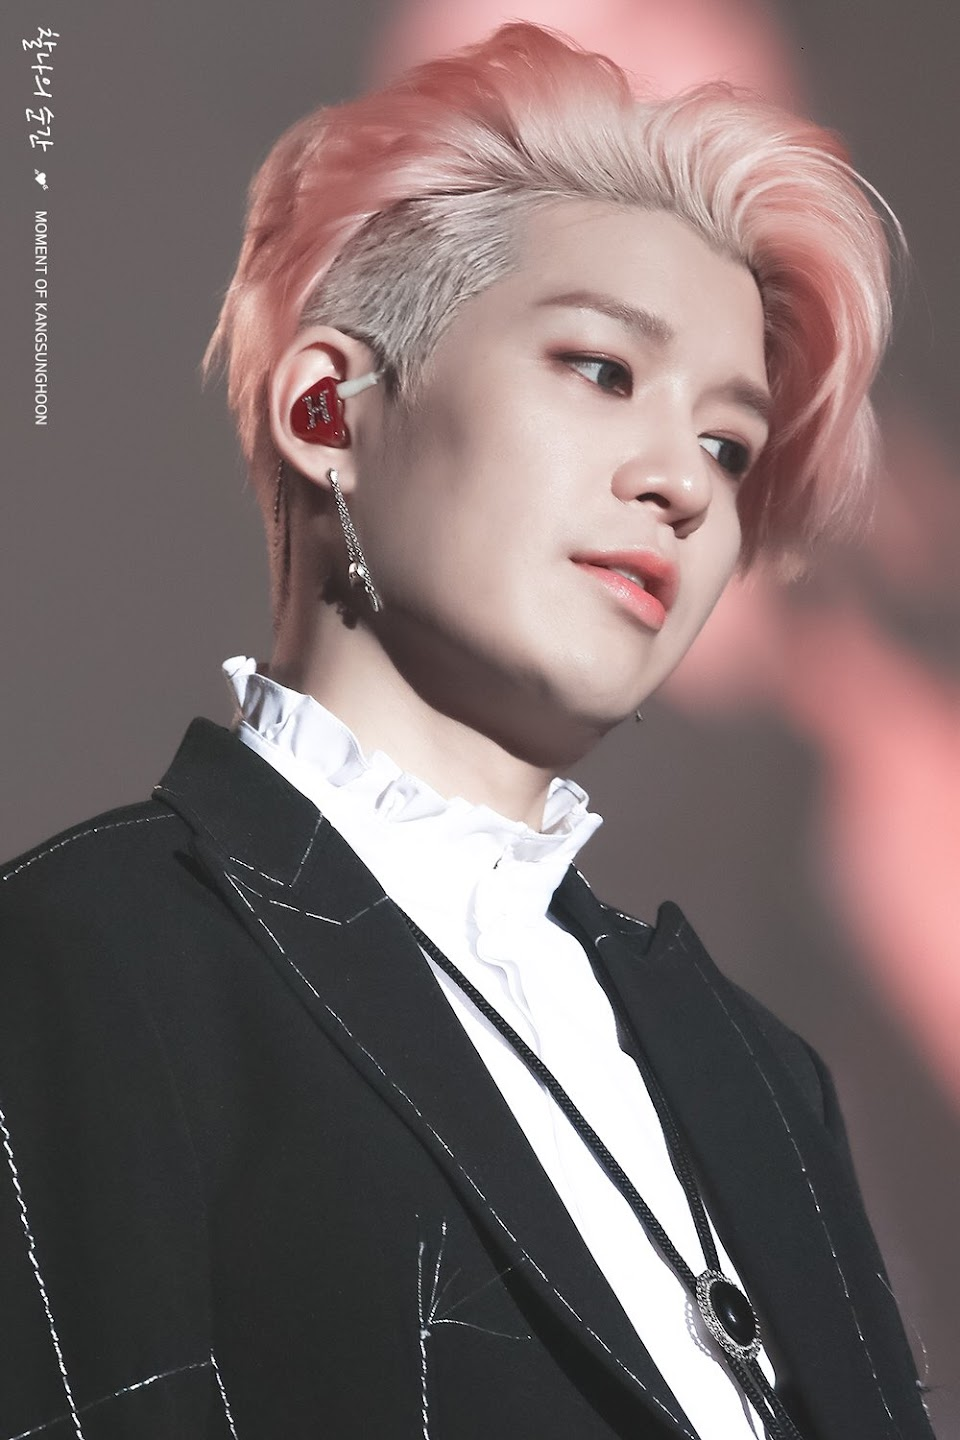 kang sunghoon fan meeting 3